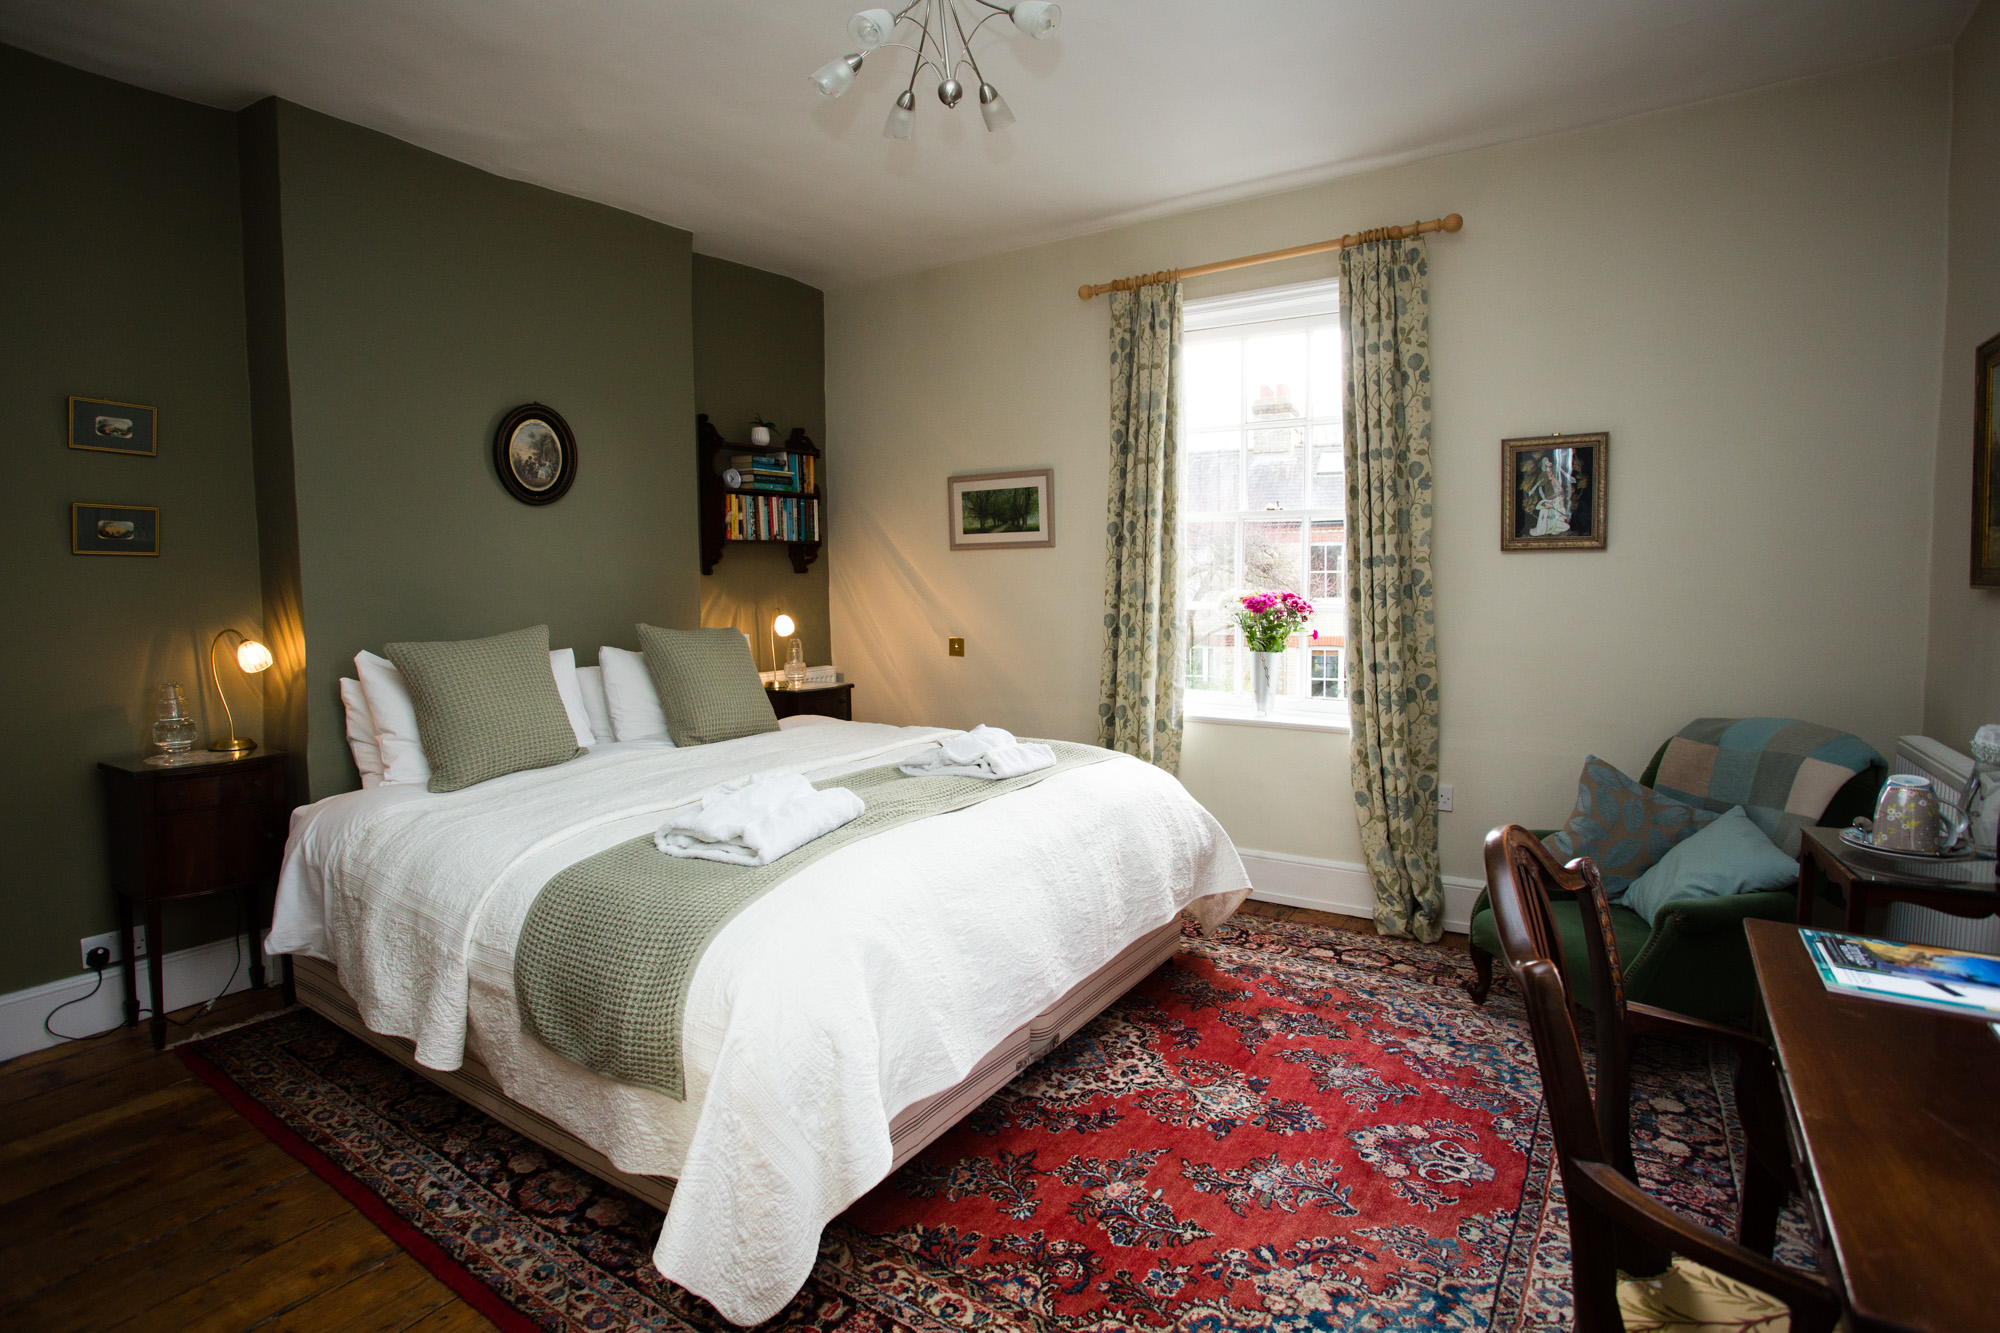 BnB Bed and Breakfast Photos Chapel Street Cambridge